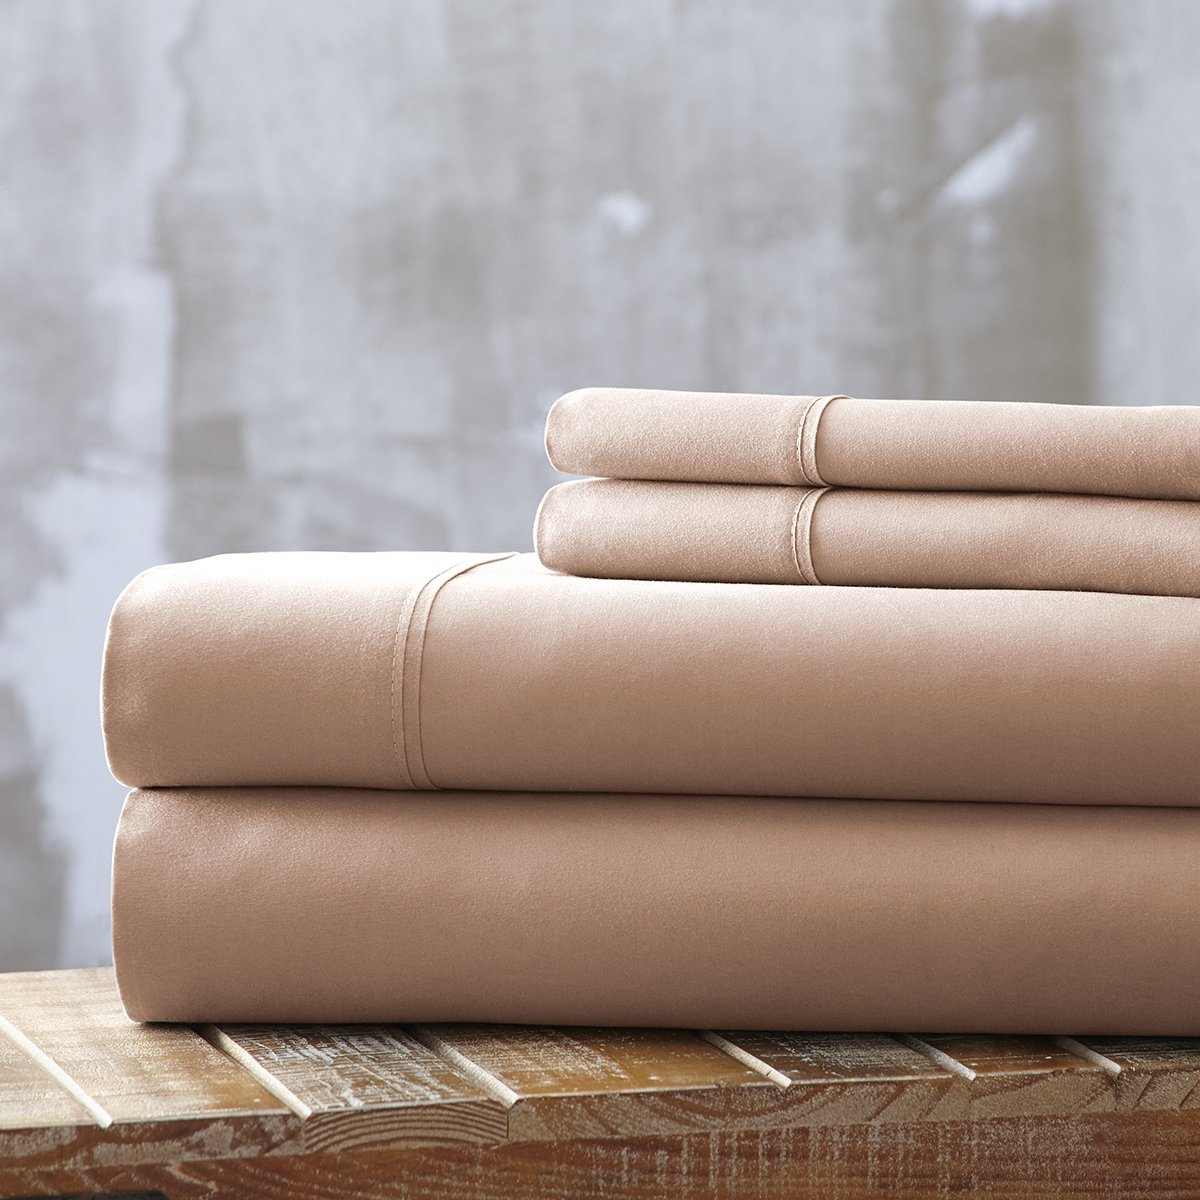 Spirit Linen, Inc Hotel 5th Ave EE-FULL-CHAMPAGNE-4PC Full Champagne Everyday Essentials 1800 Series 4Pc Sheet Set